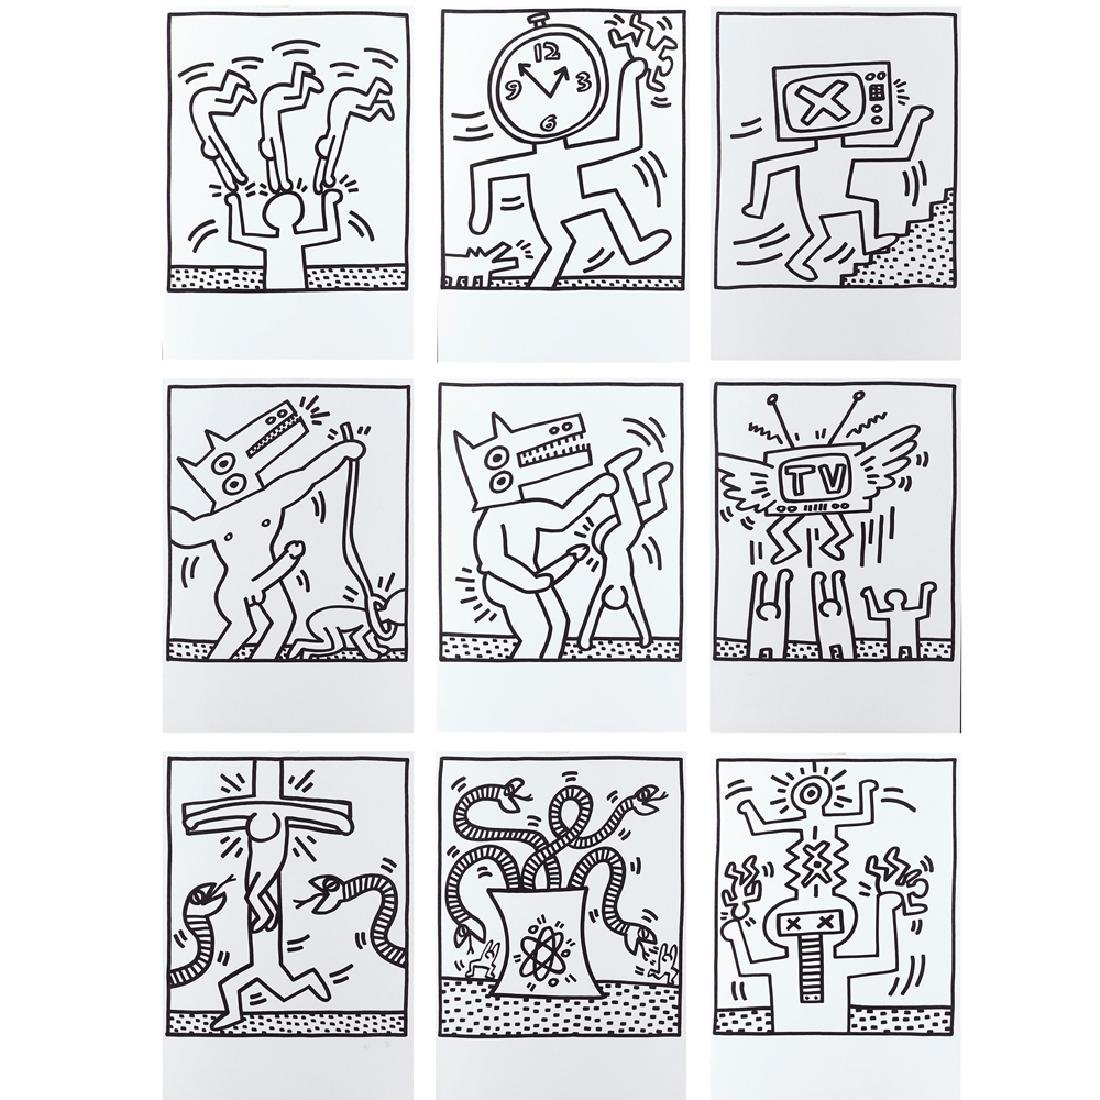 Keith Haring Reading 1958 - New York 1990 47.3x33.5 cm.